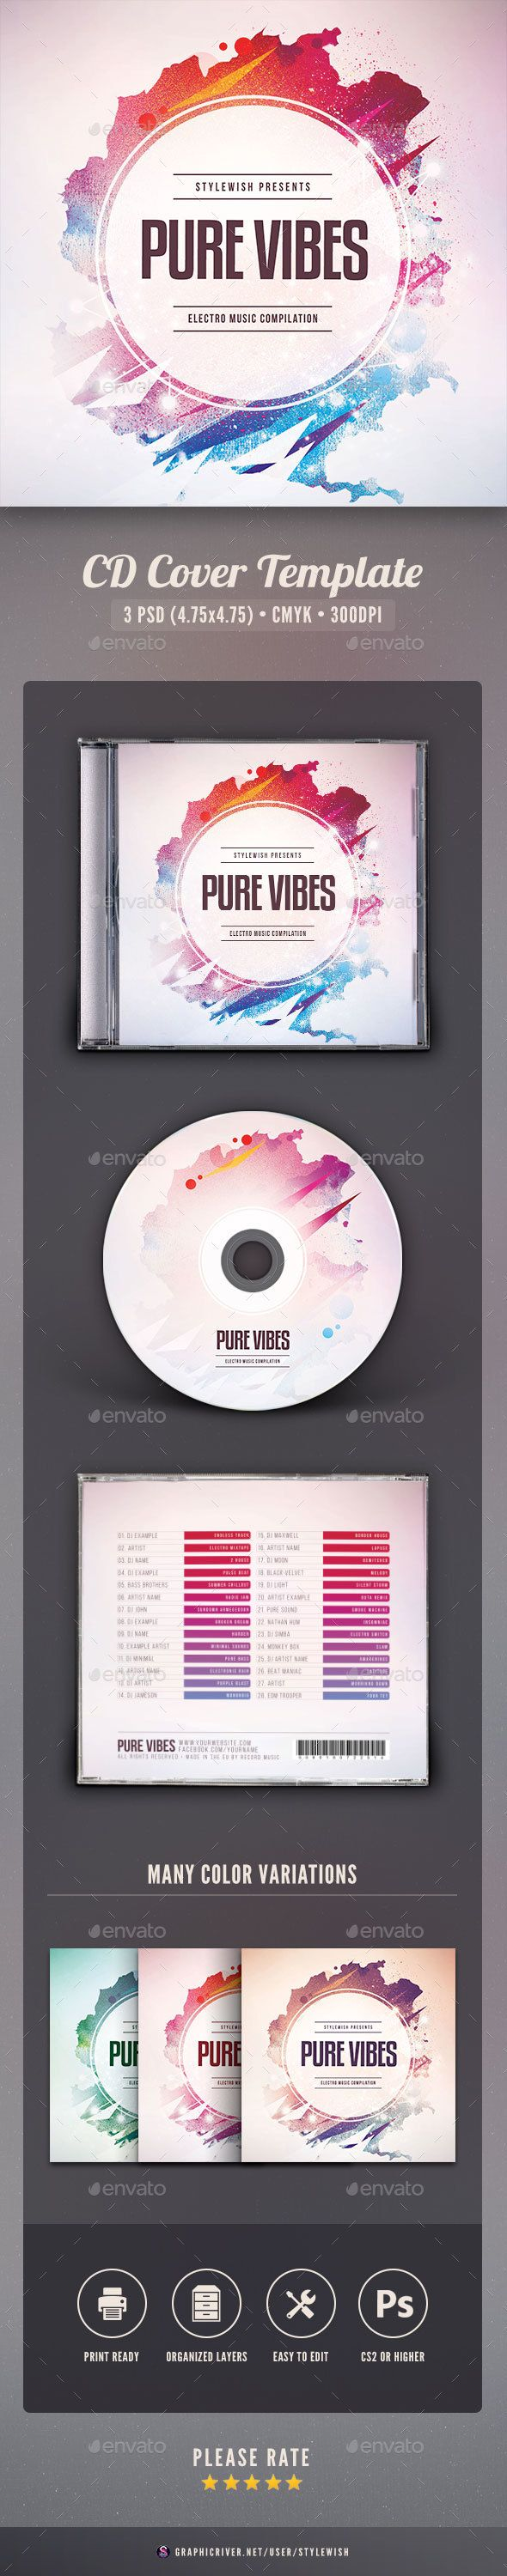 Best 25+ Cd cover ideas on Pinterest | Cd design, Cd cover design ...